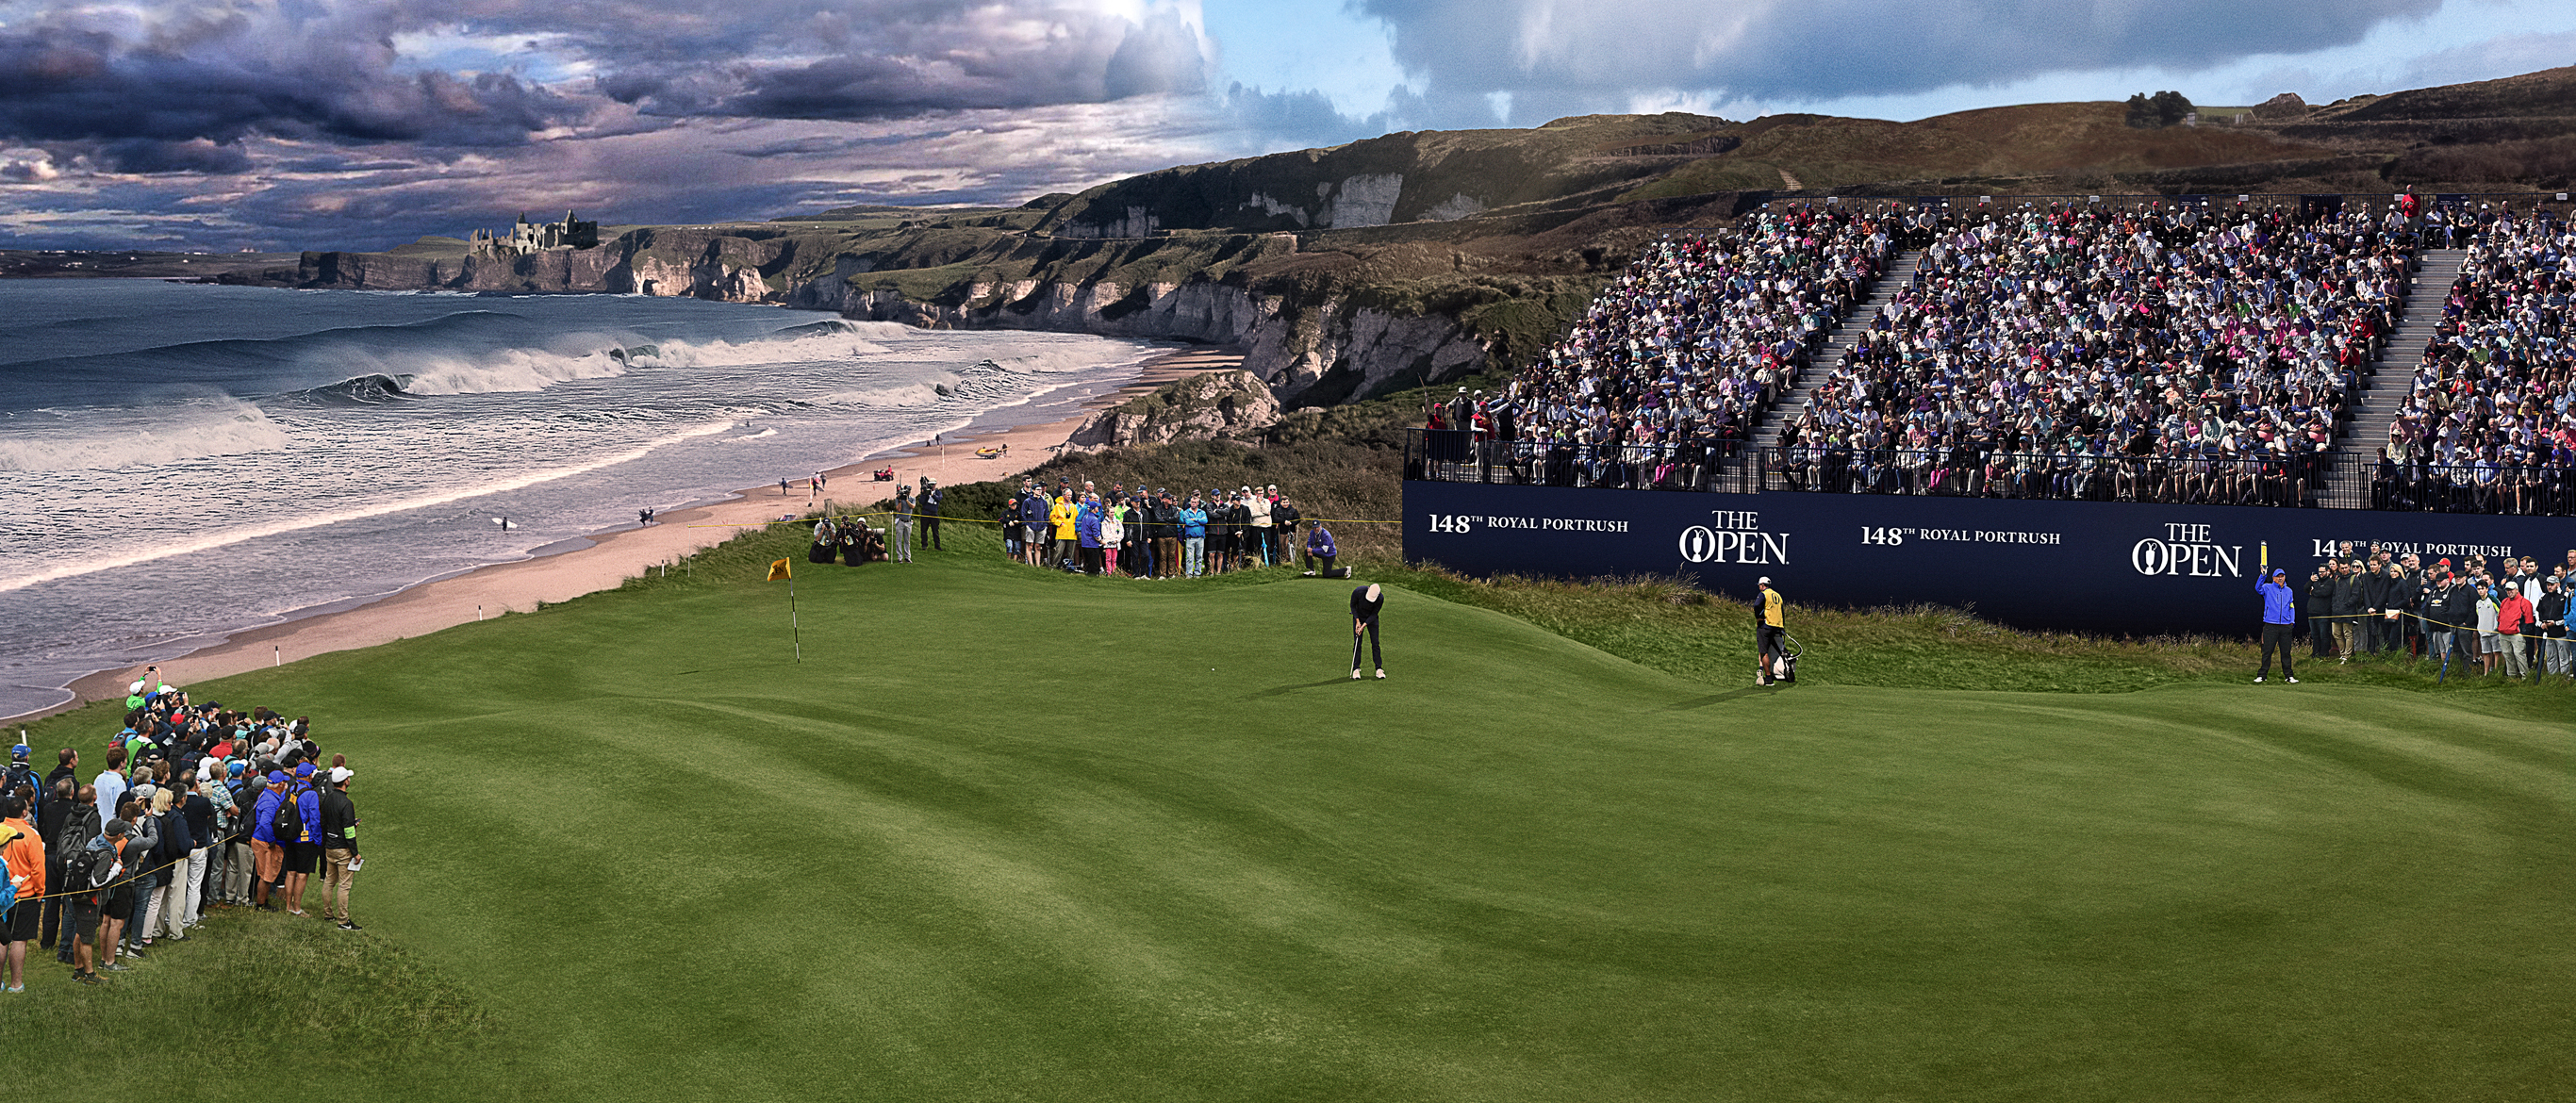 The 148th Open British Open at Royal Portrush